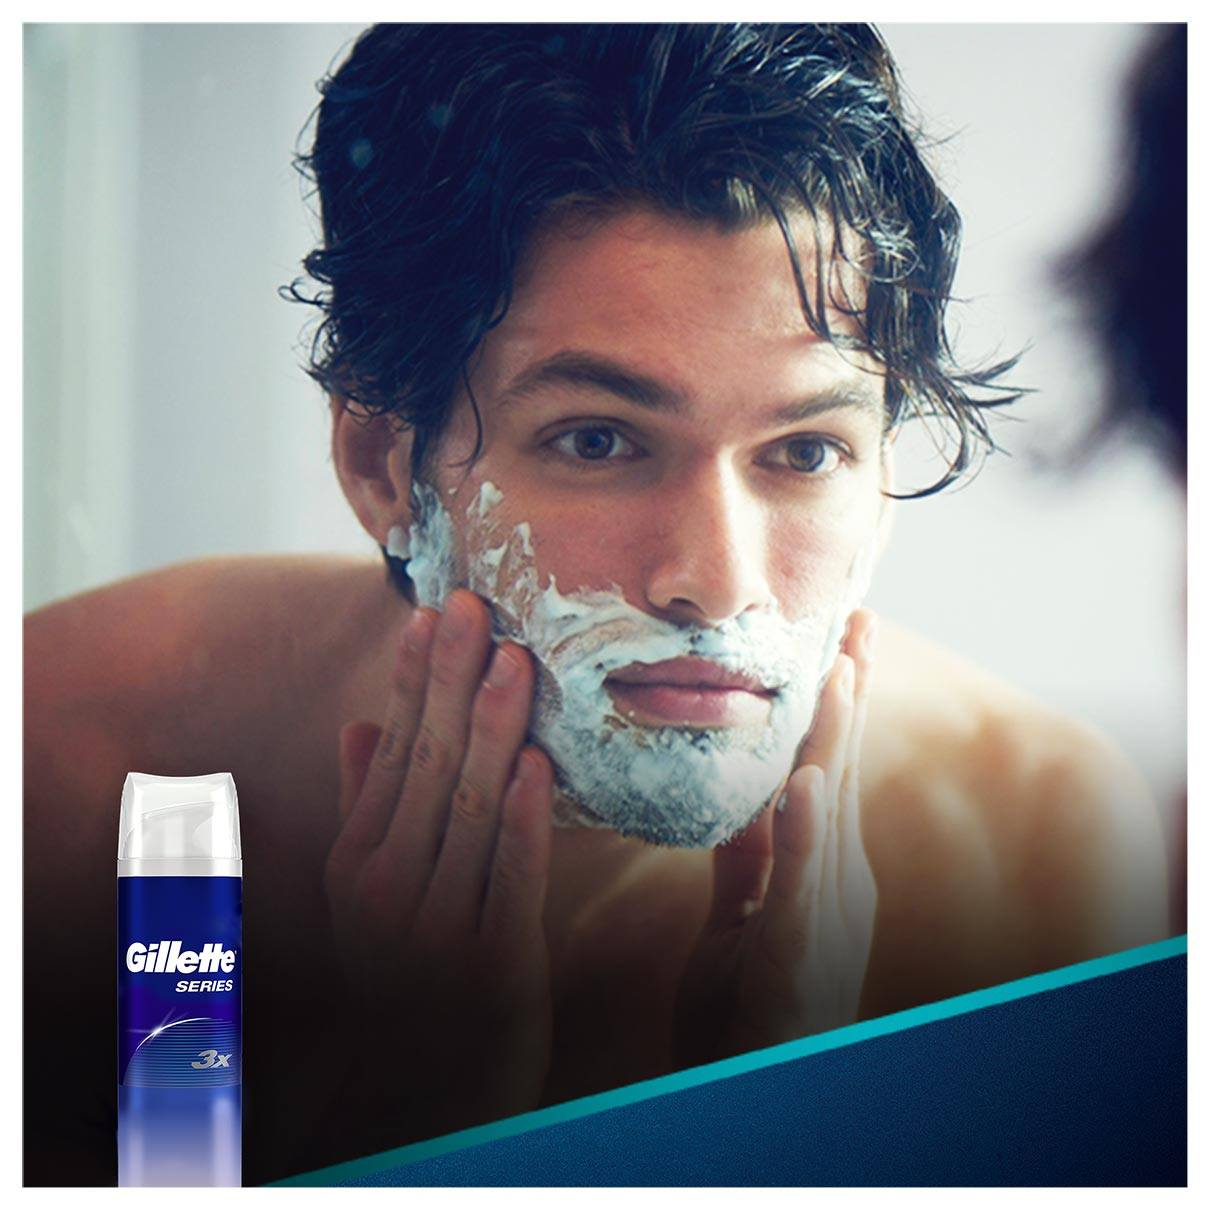 Series Moisturizing Shave Gel